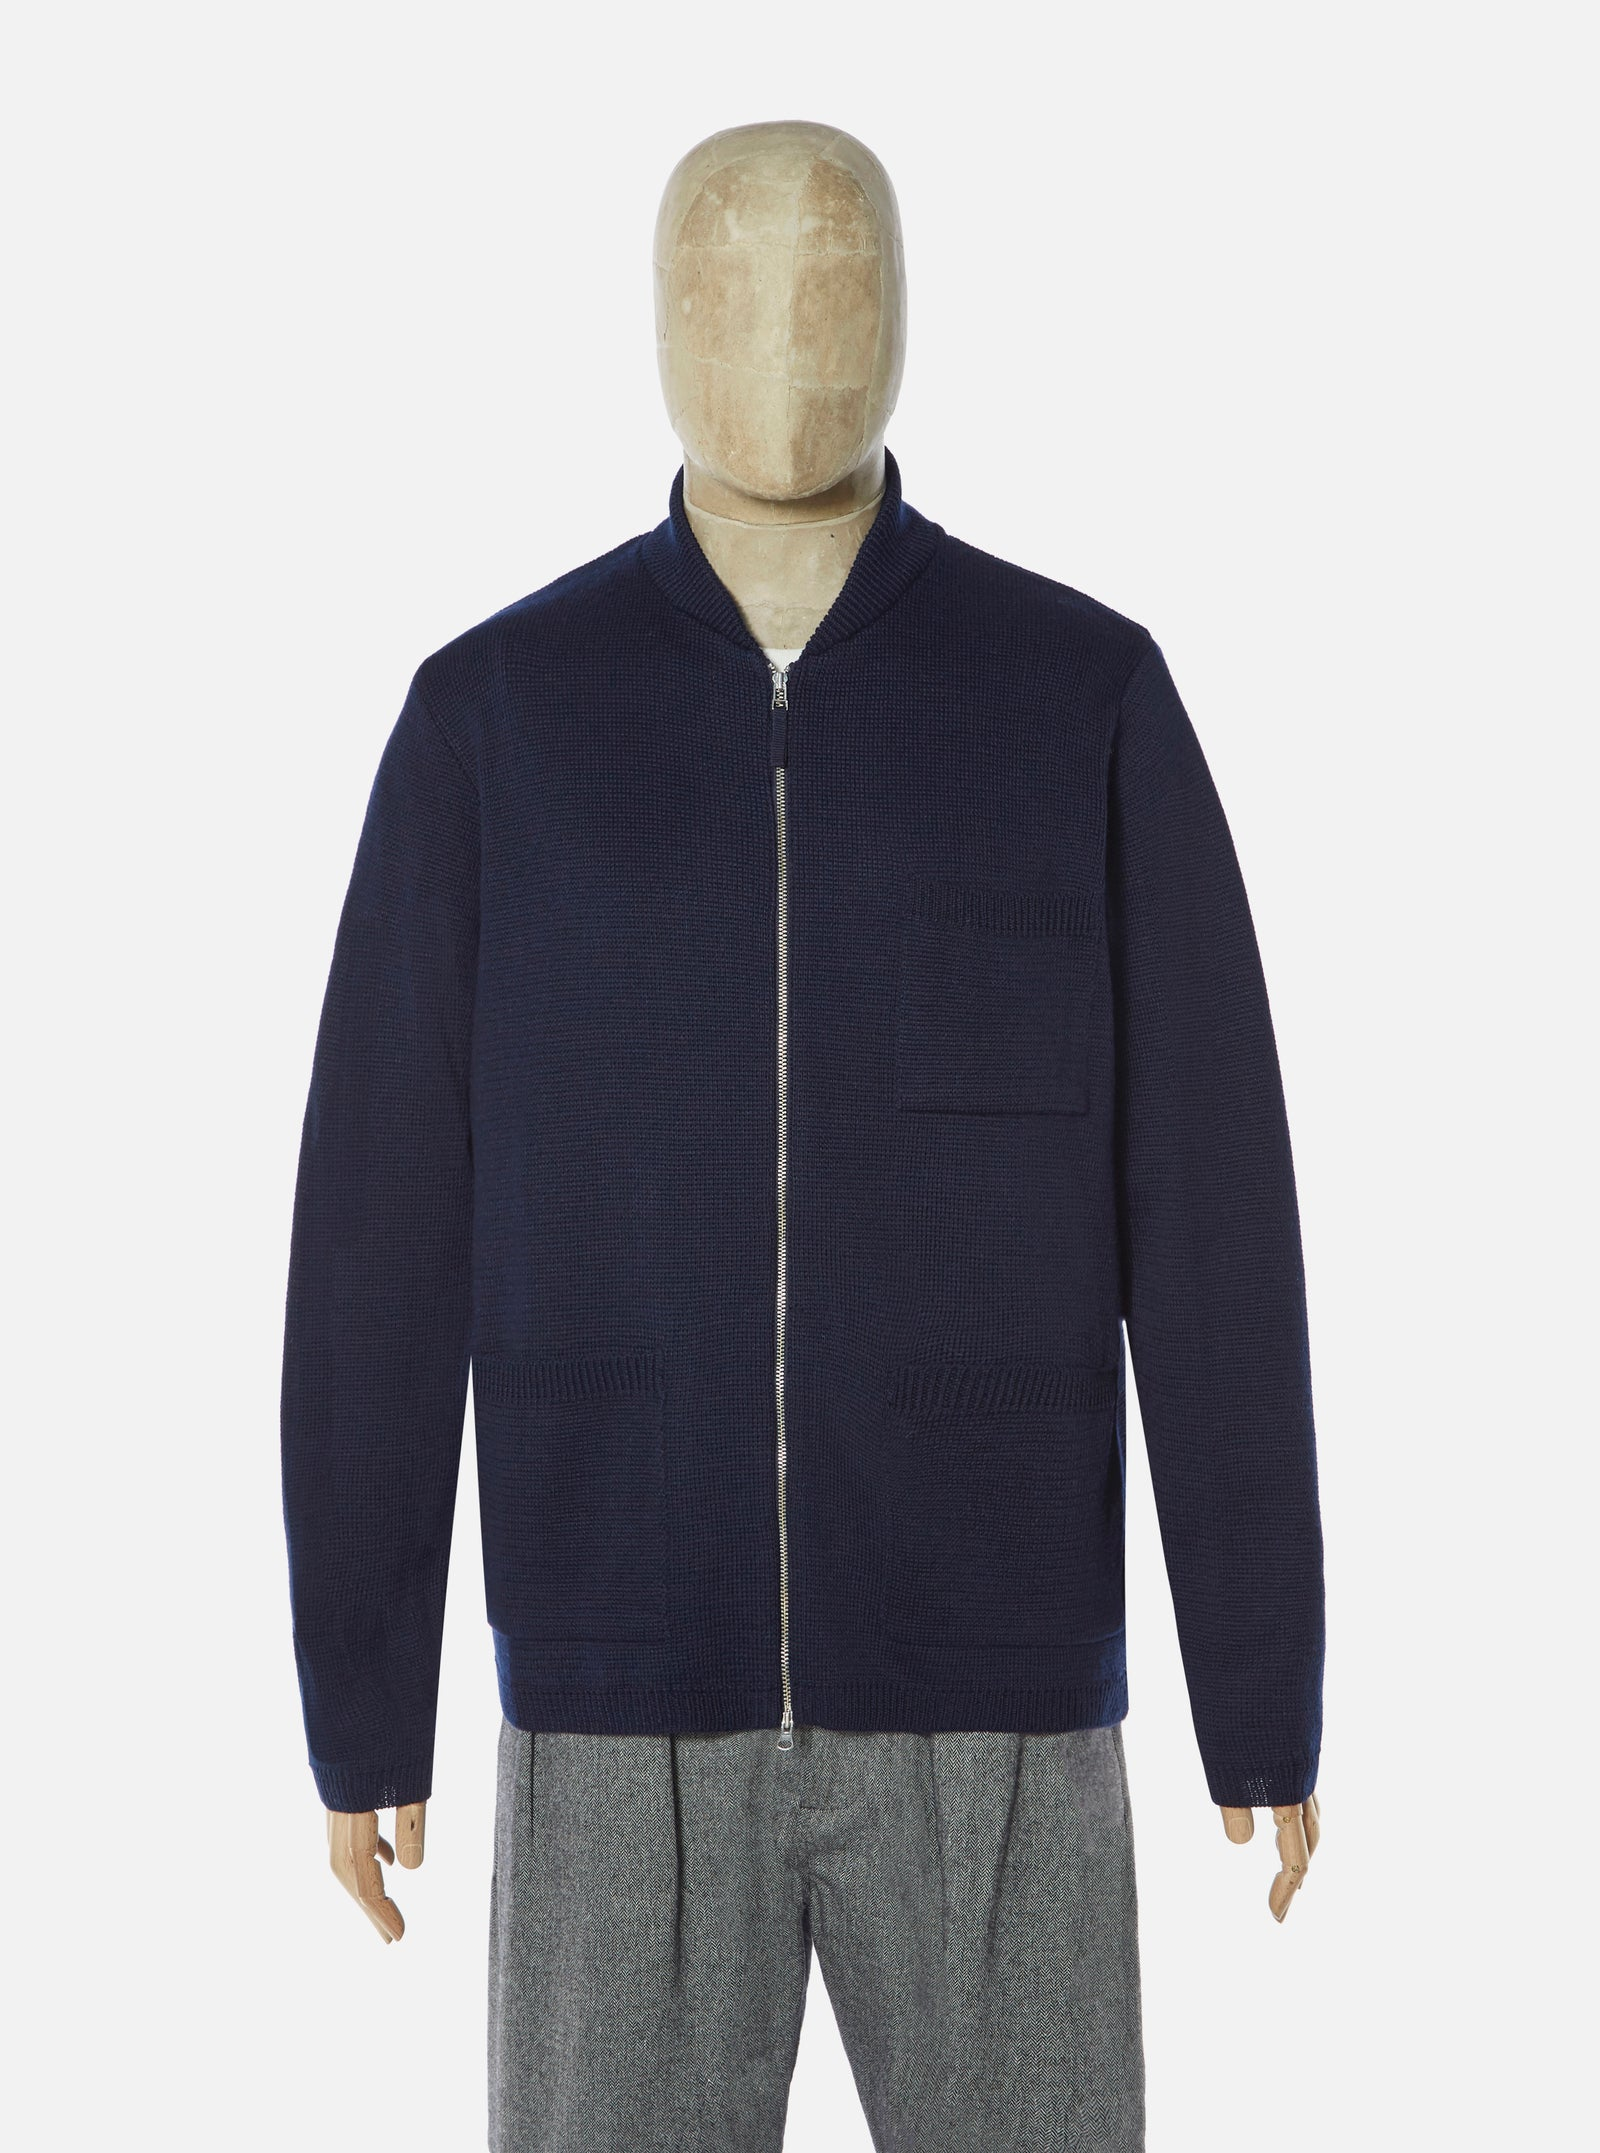 Universal Works Zip Knit Work Jacket in Navy Merino ½ Milano